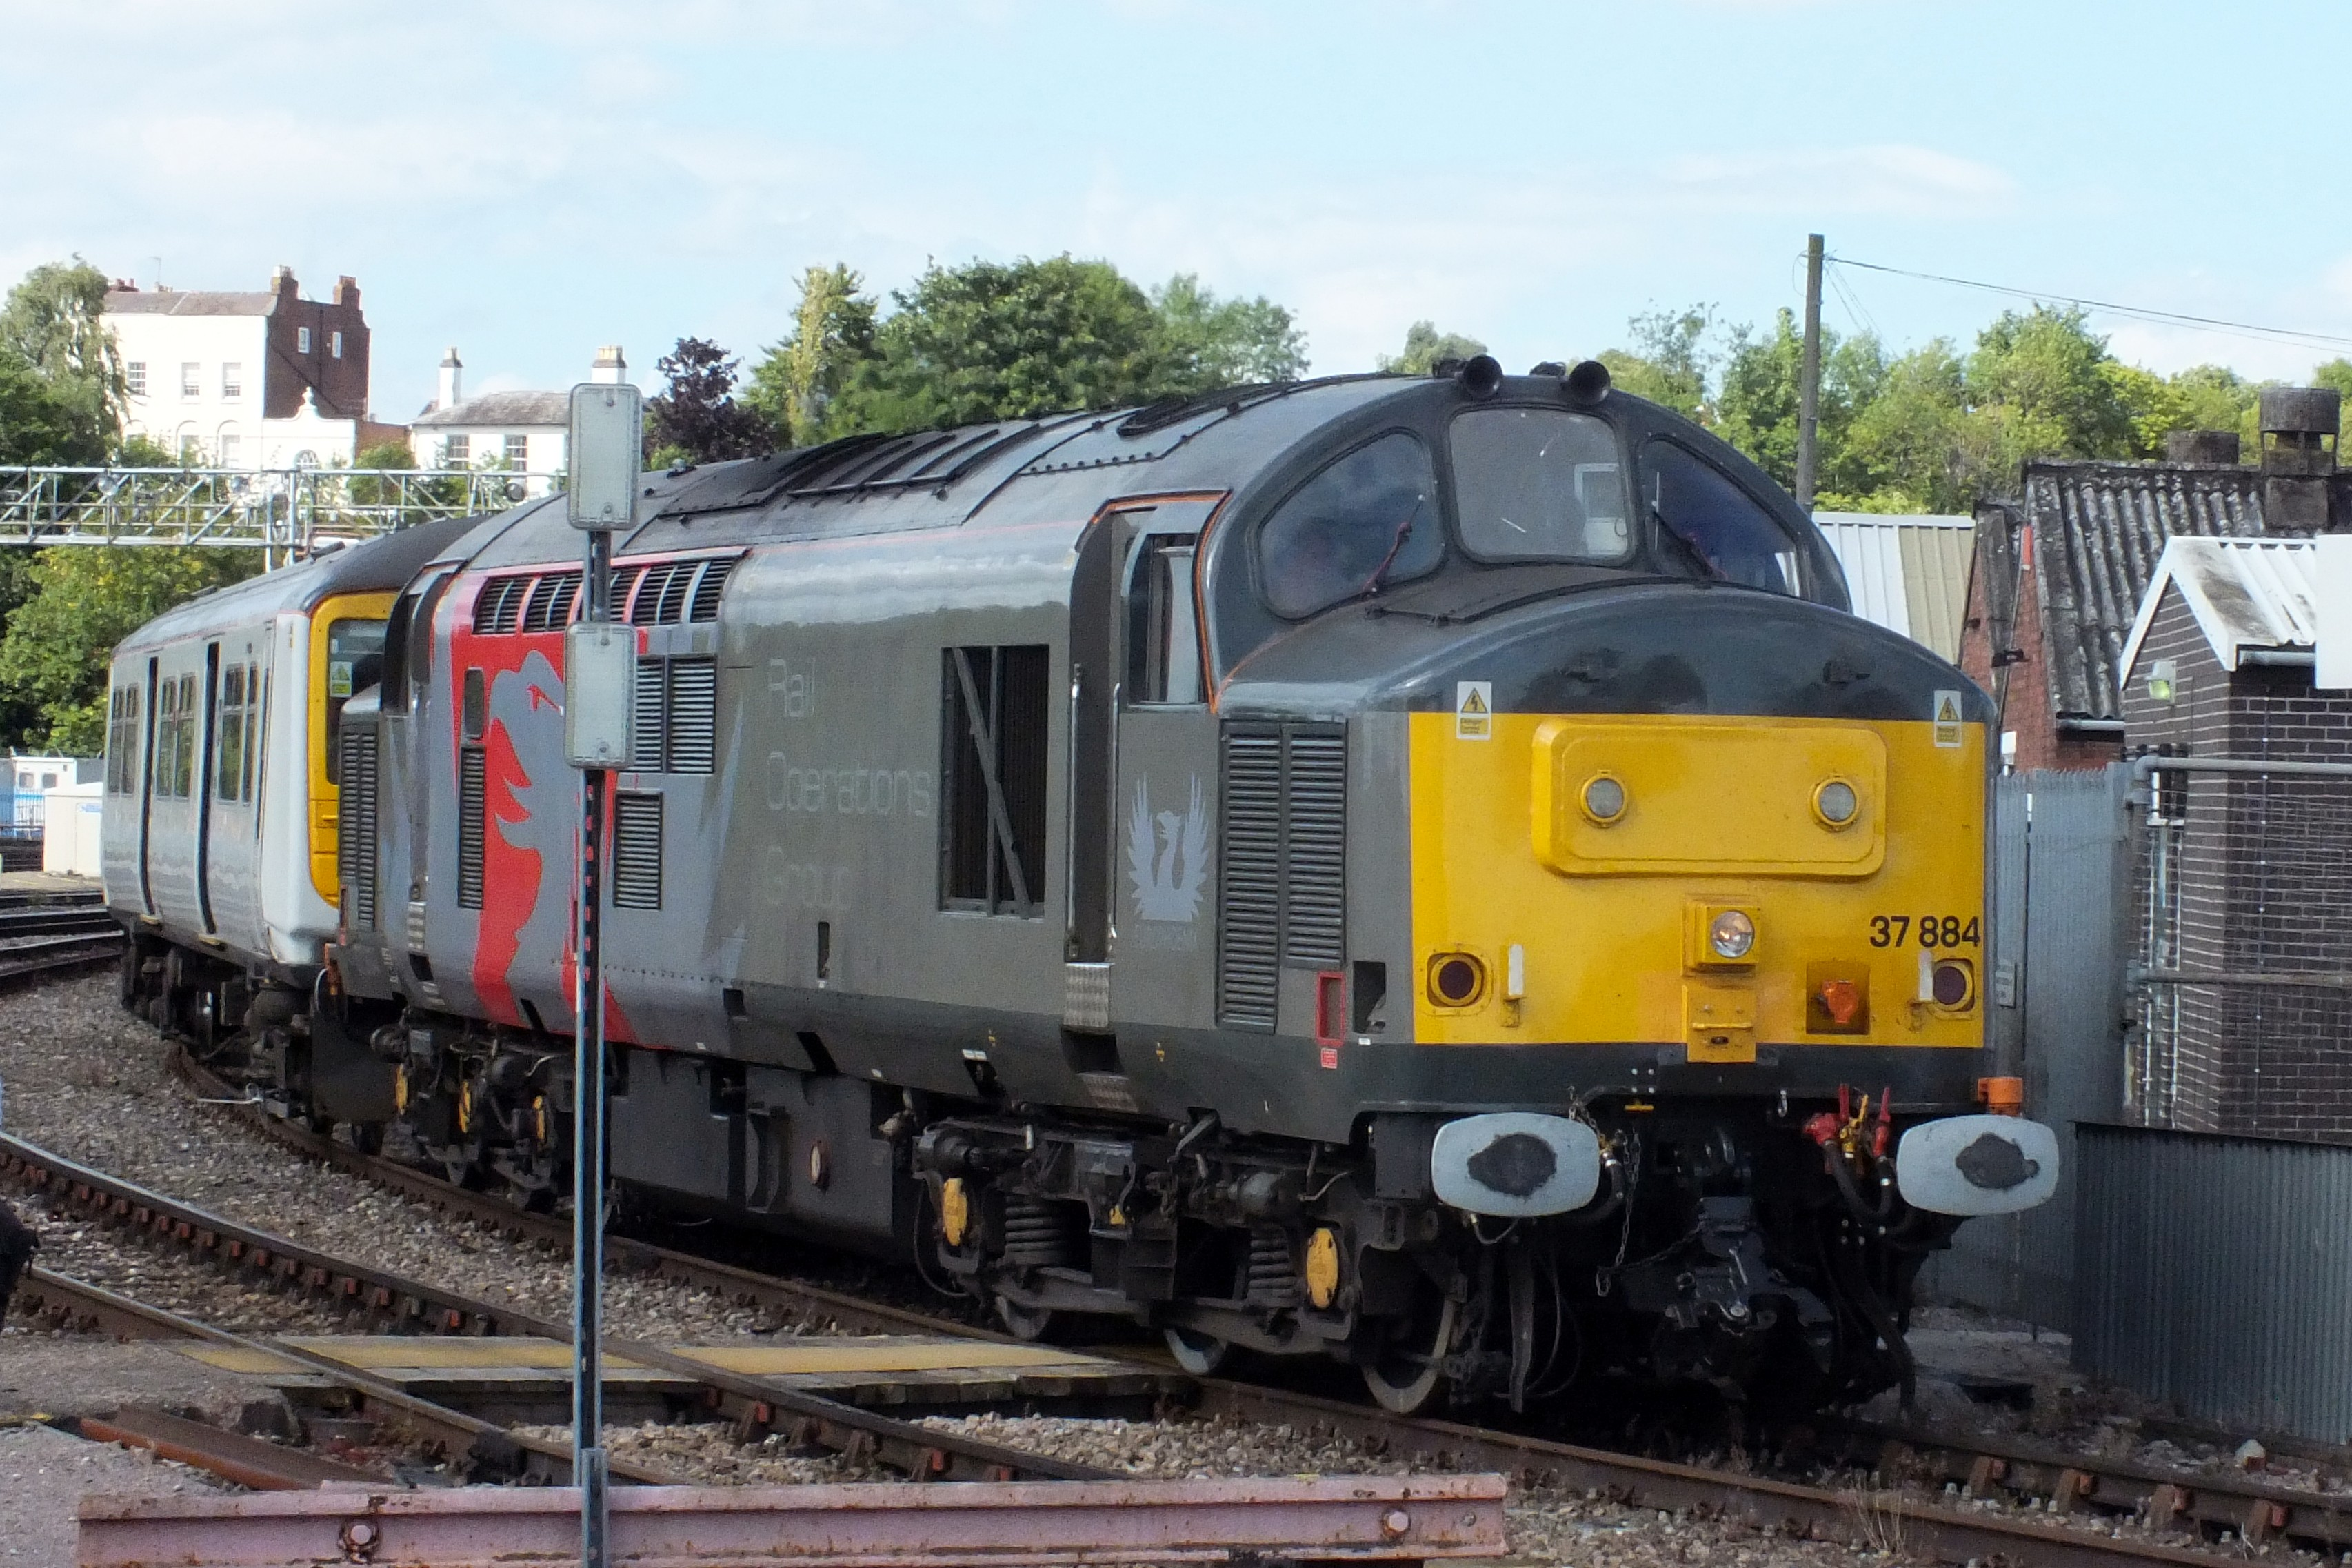 17 August 2017 Shrub Hill 013.jpg